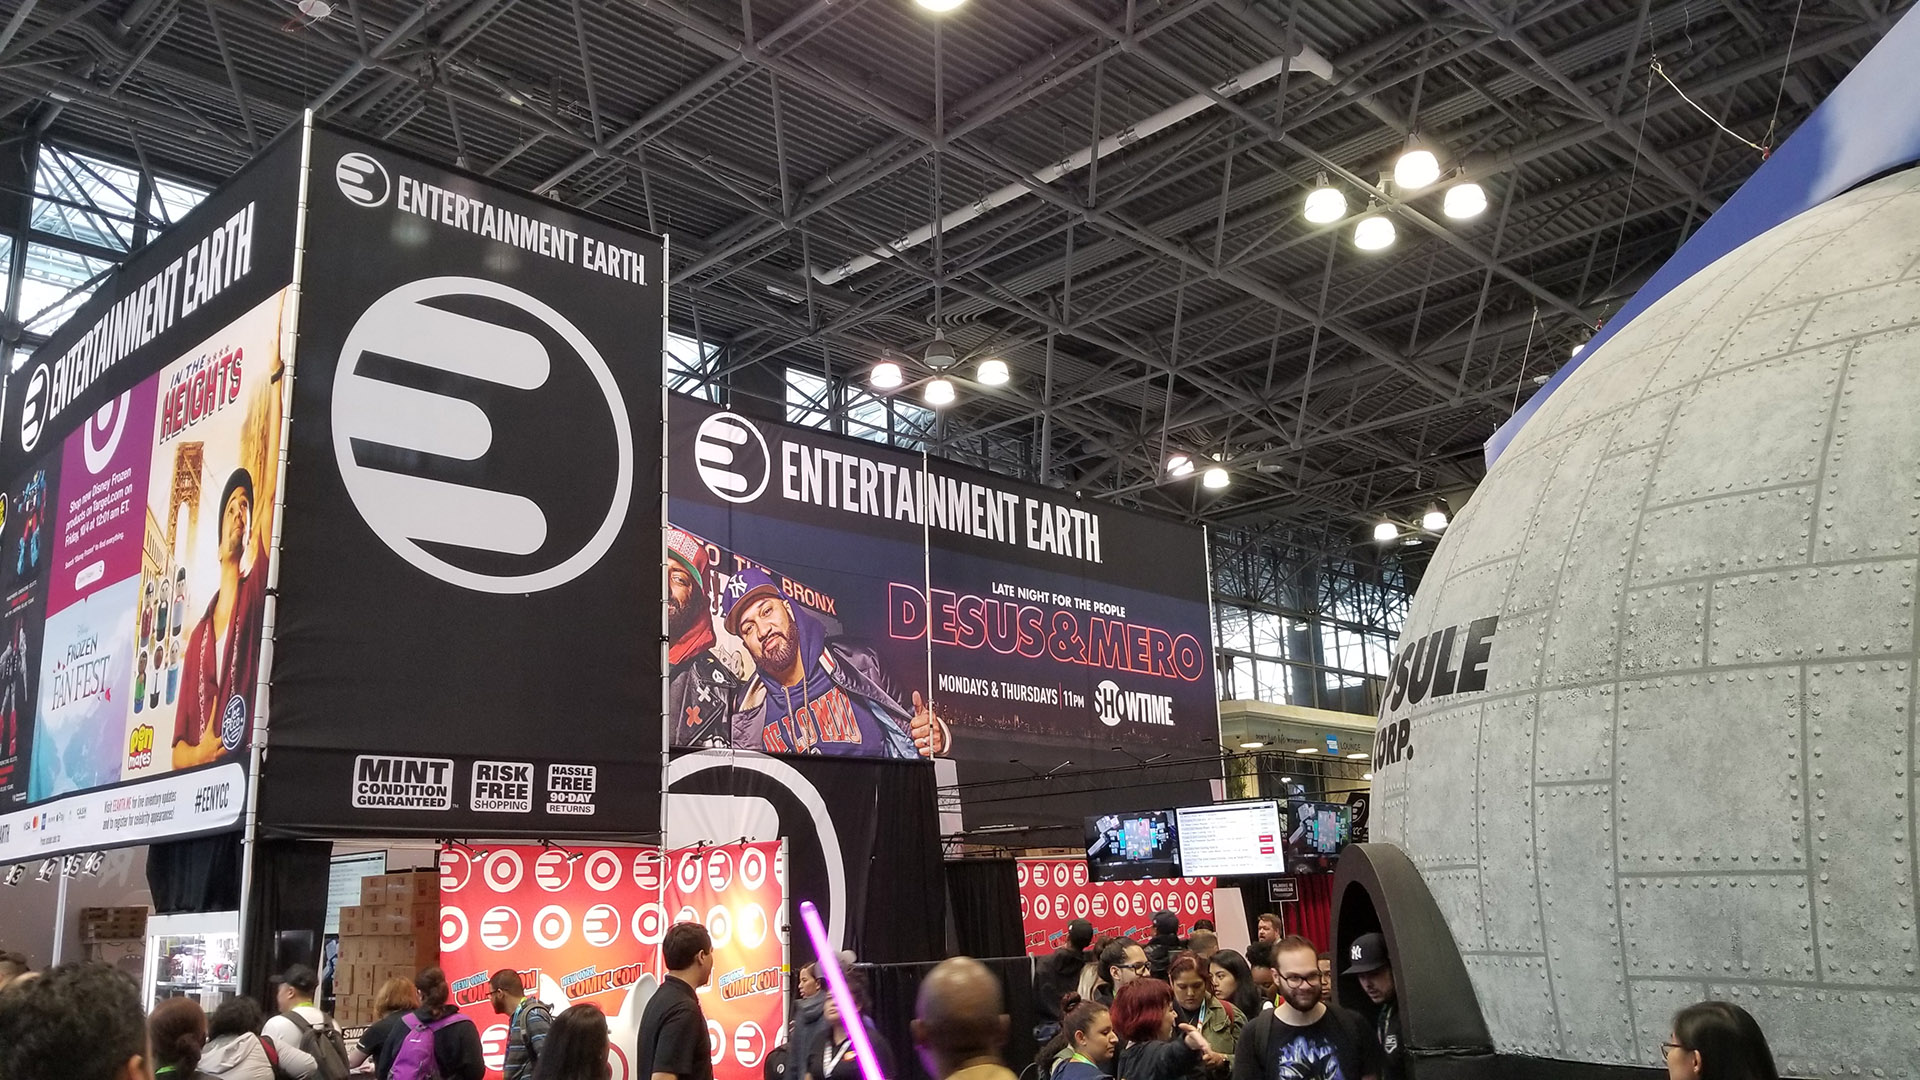 THE IMPORTANCE OF TRADE SHOWS